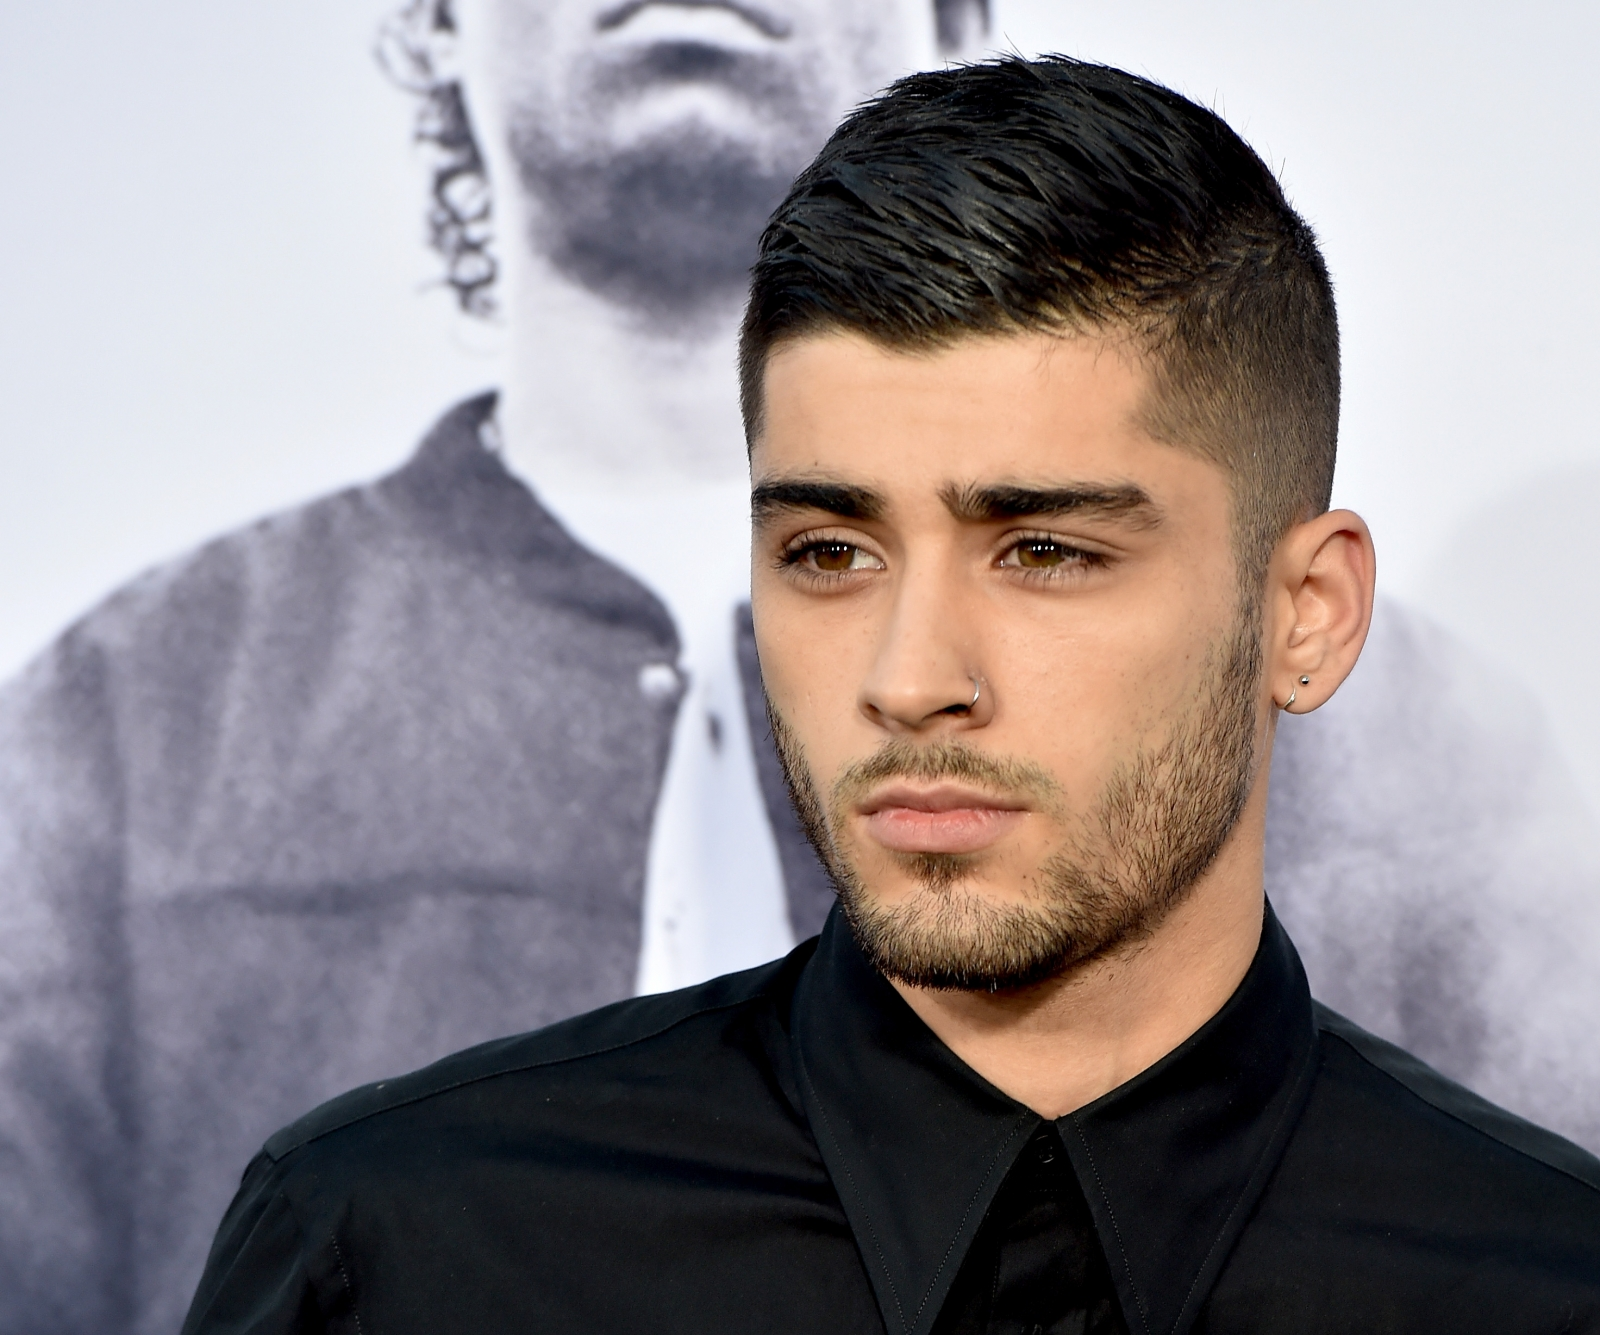 Zayn Malik Sparks Backlash After Asking Fans To Fund